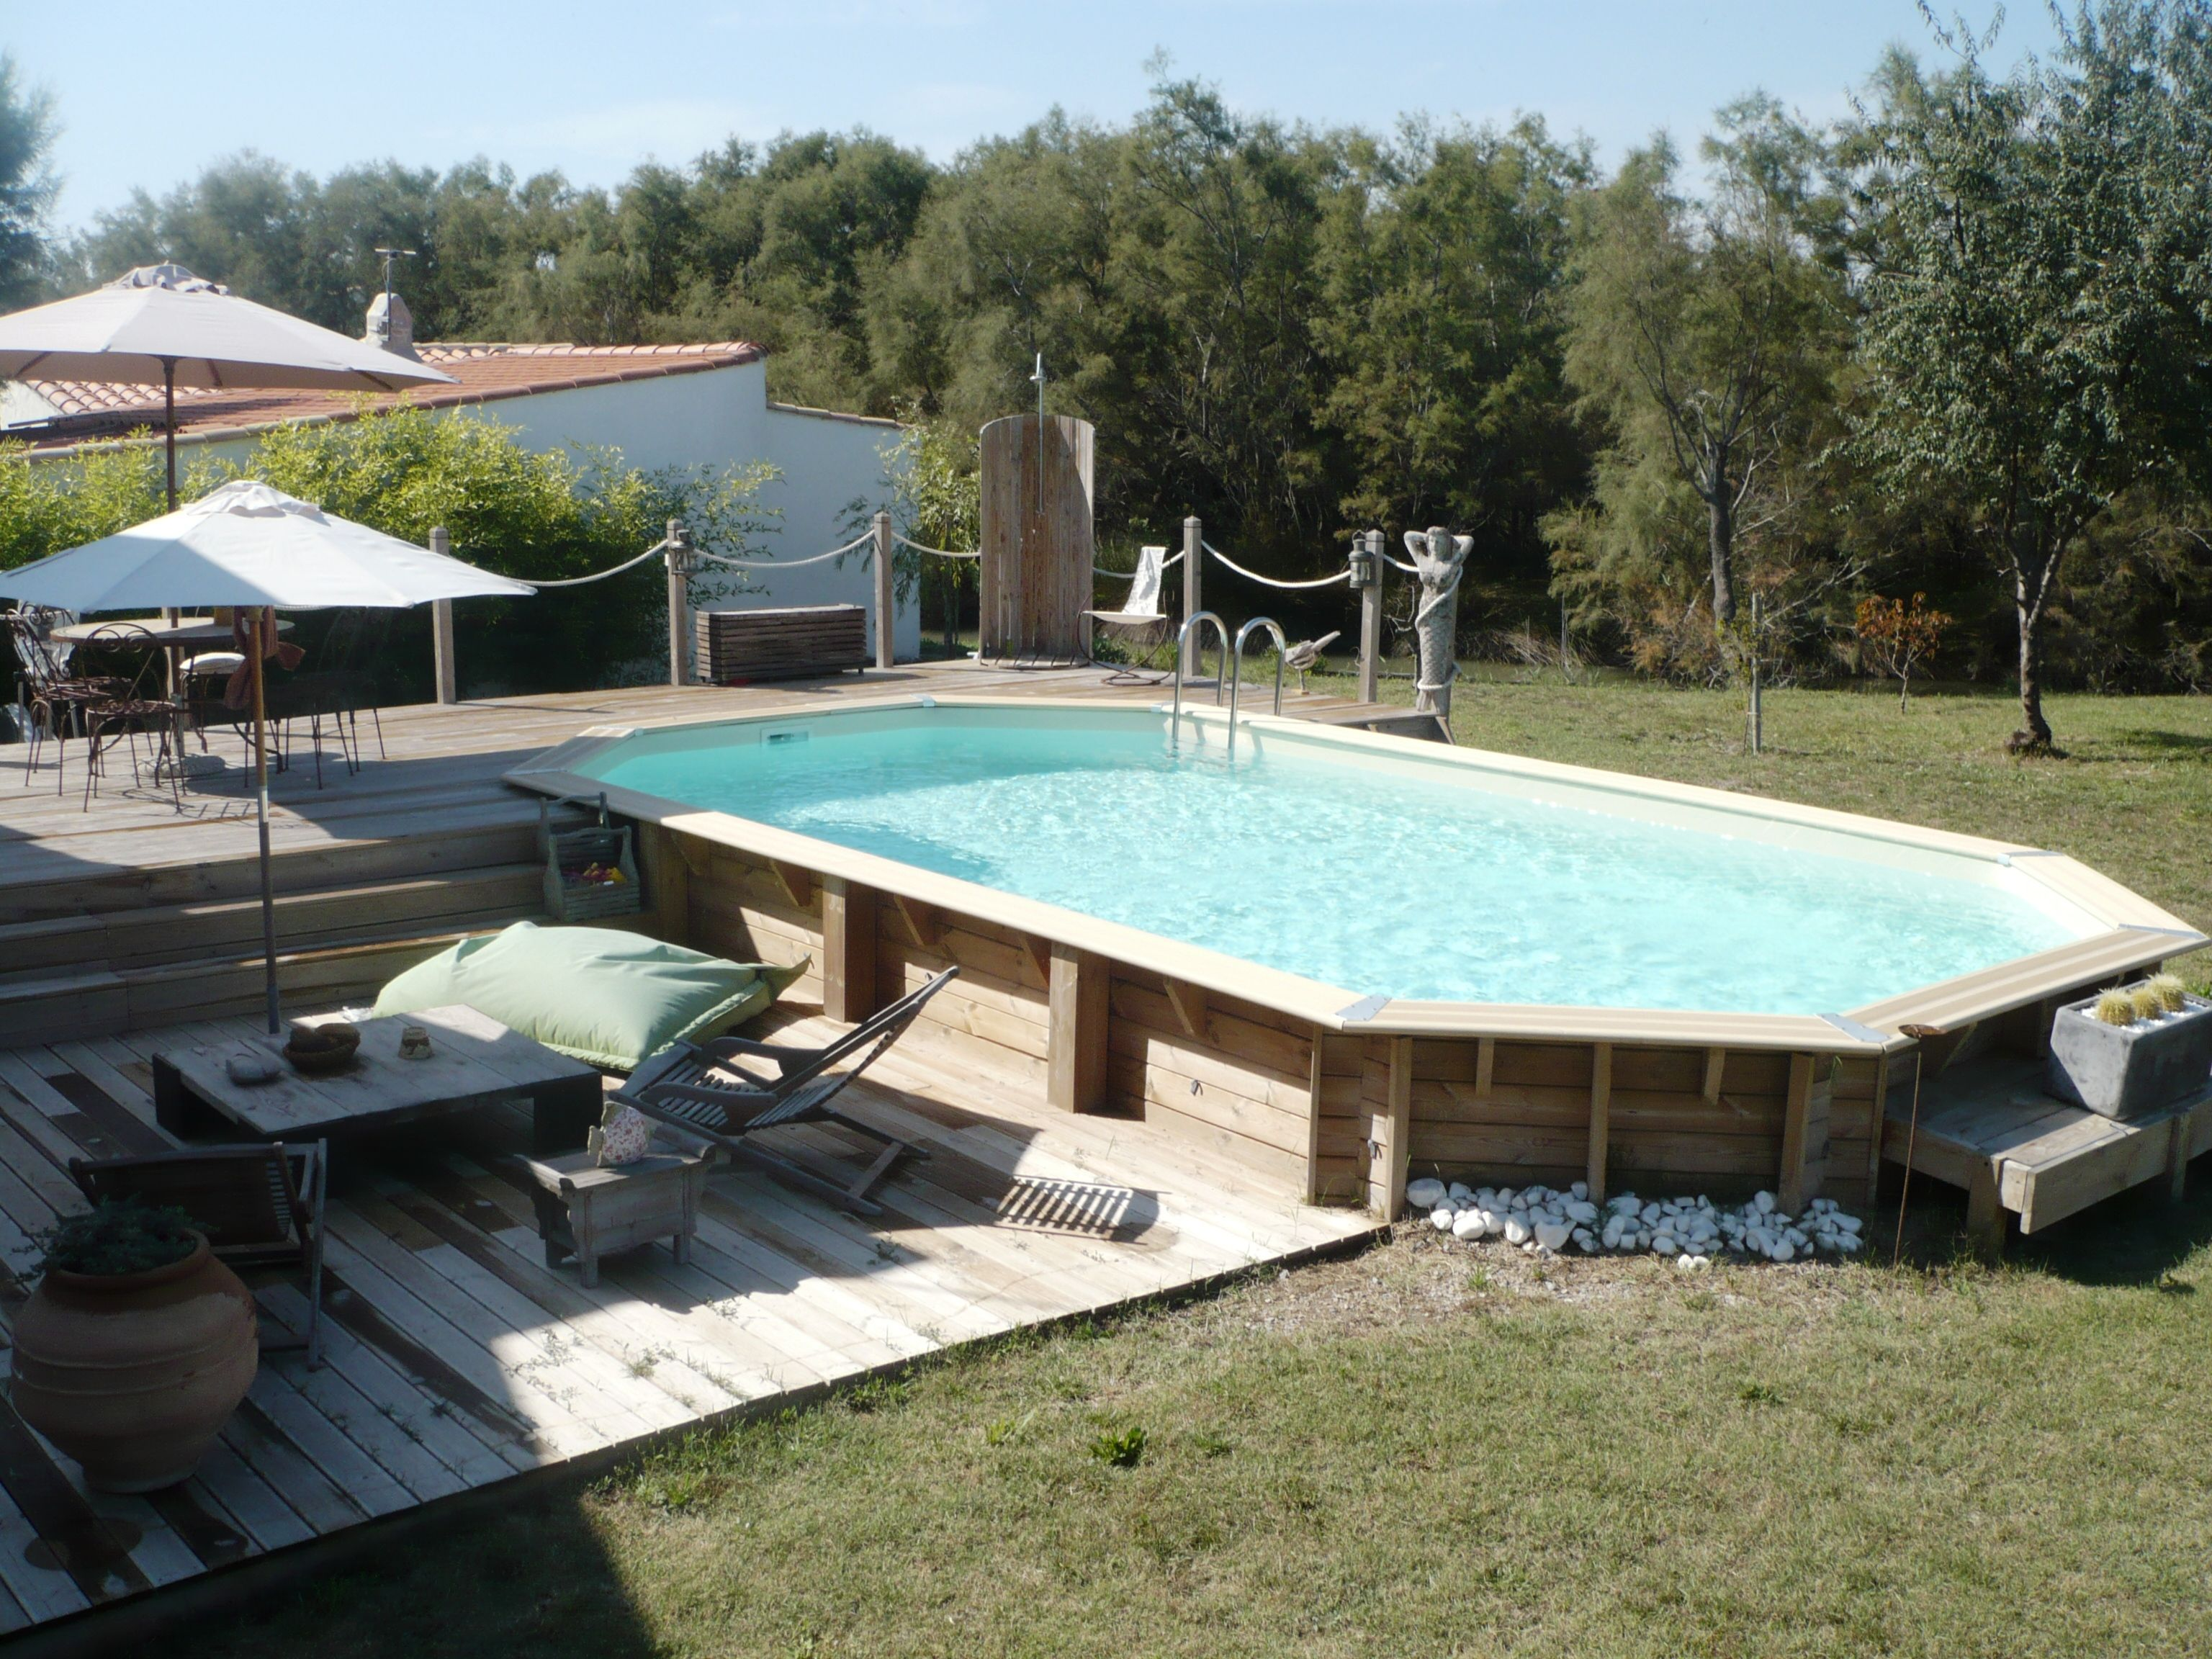 piscine hors sol en bois semi enterr e avec sa terrasse et. Black Bedroom Furniture Sets. Home Design Ideas